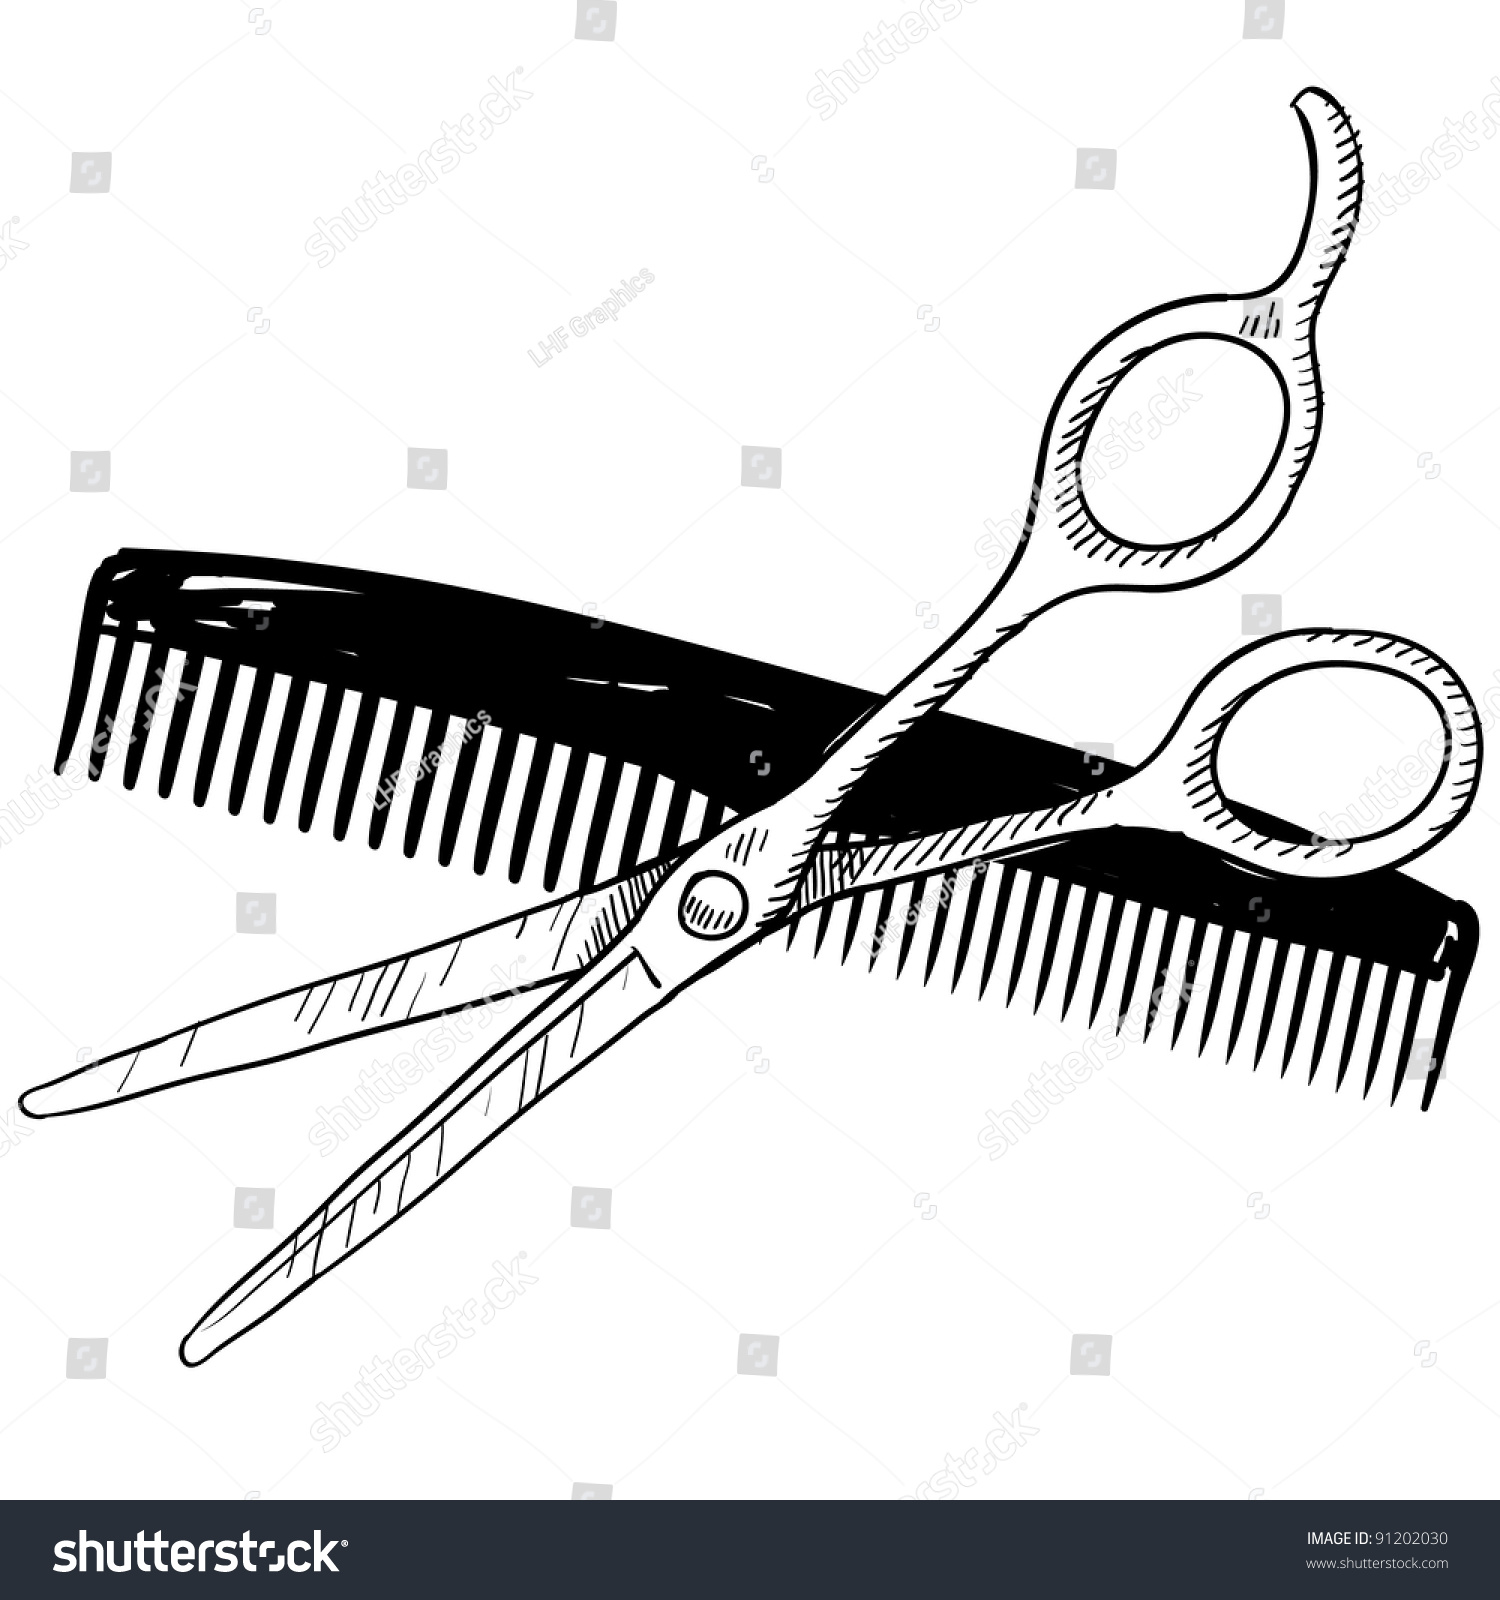 Doodle Style Hair Stylist Or Barber Scissors And Comb